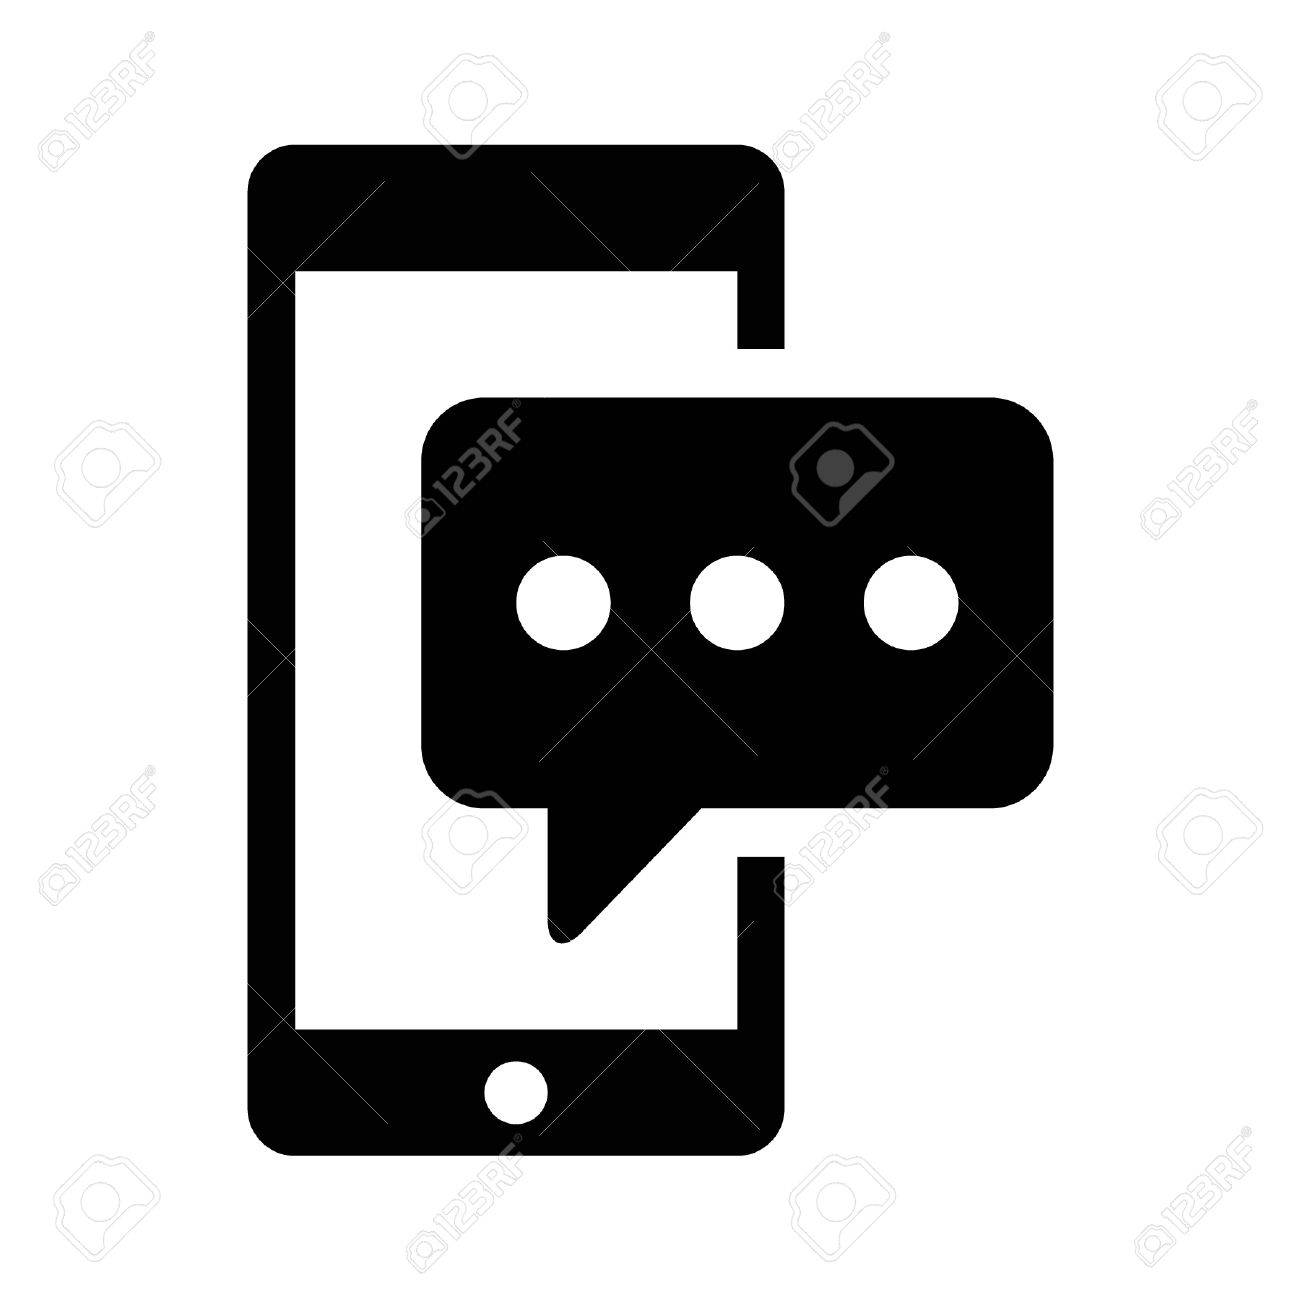 SMS phone text message flat icon for apps and websites